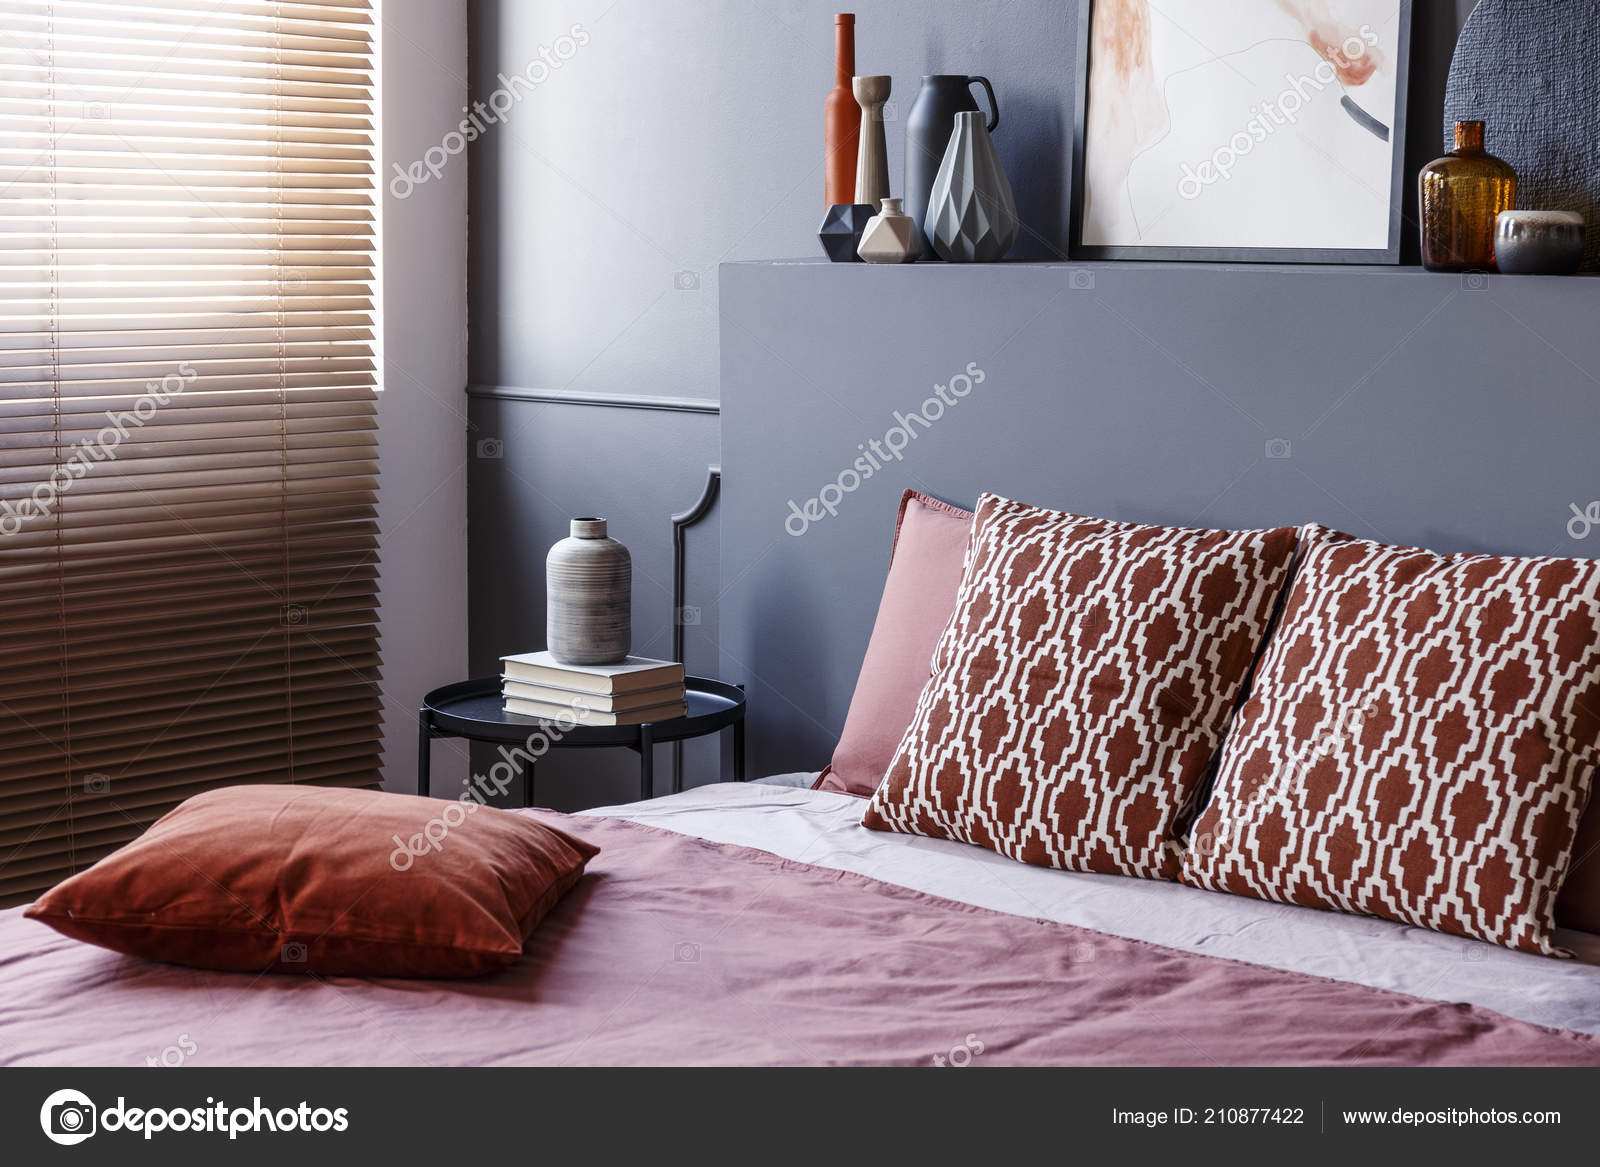 Patterned Cushions Bed Headboard Grey Modern Bedroom Interior Blinds Stock Photo Image By C Photographee Eu 210877422